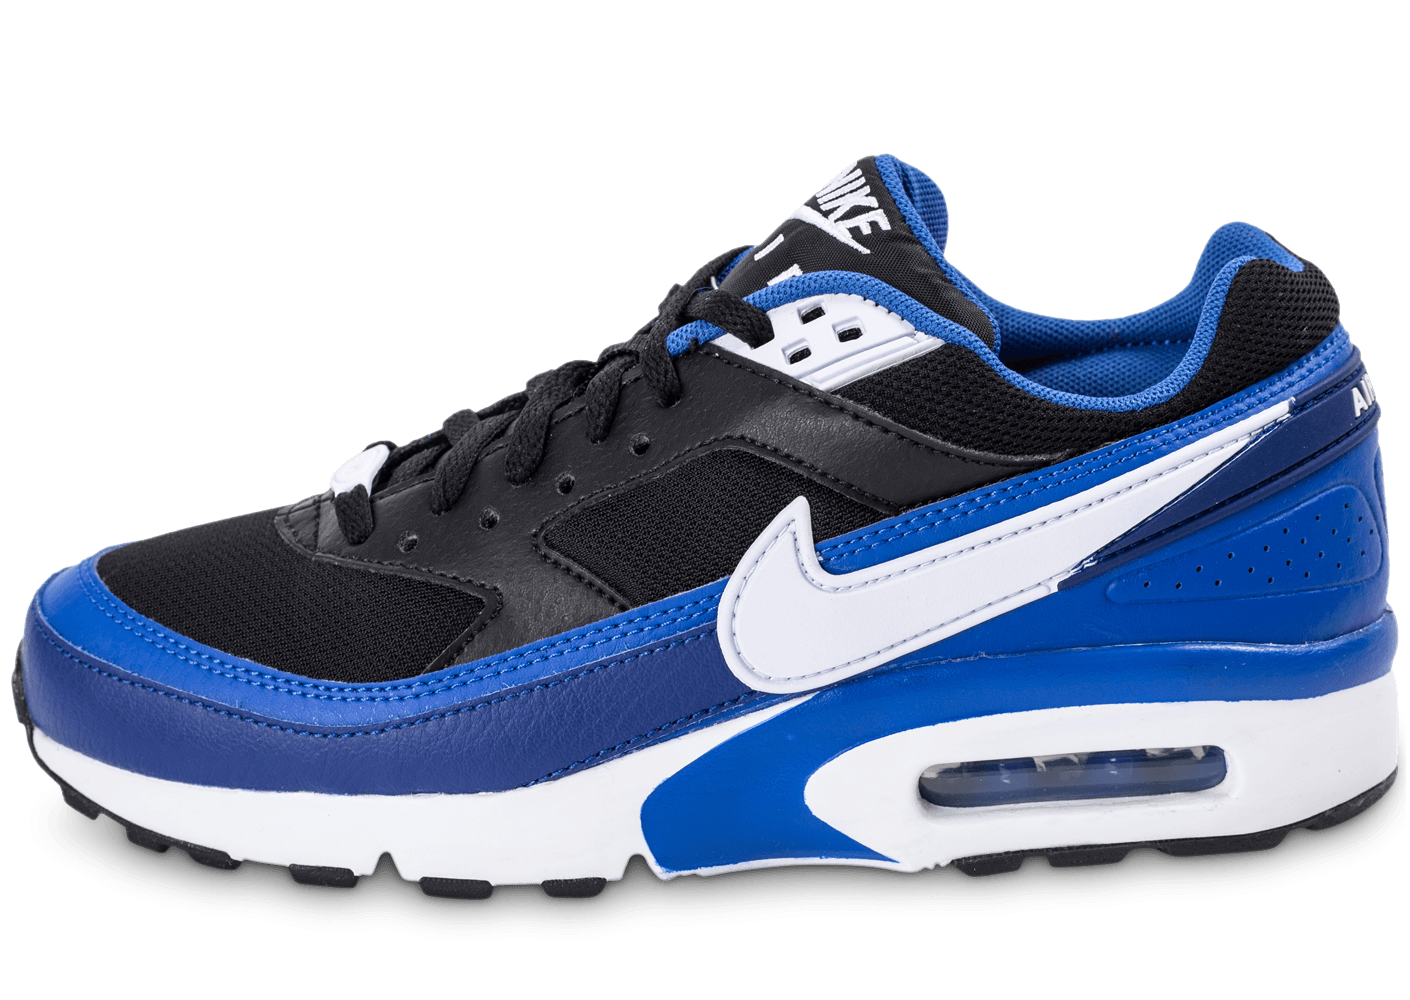 nike air max bw junior bleue chaussures chaussures chausport. Black Bedroom Furniture Sets. Home Design Ideas